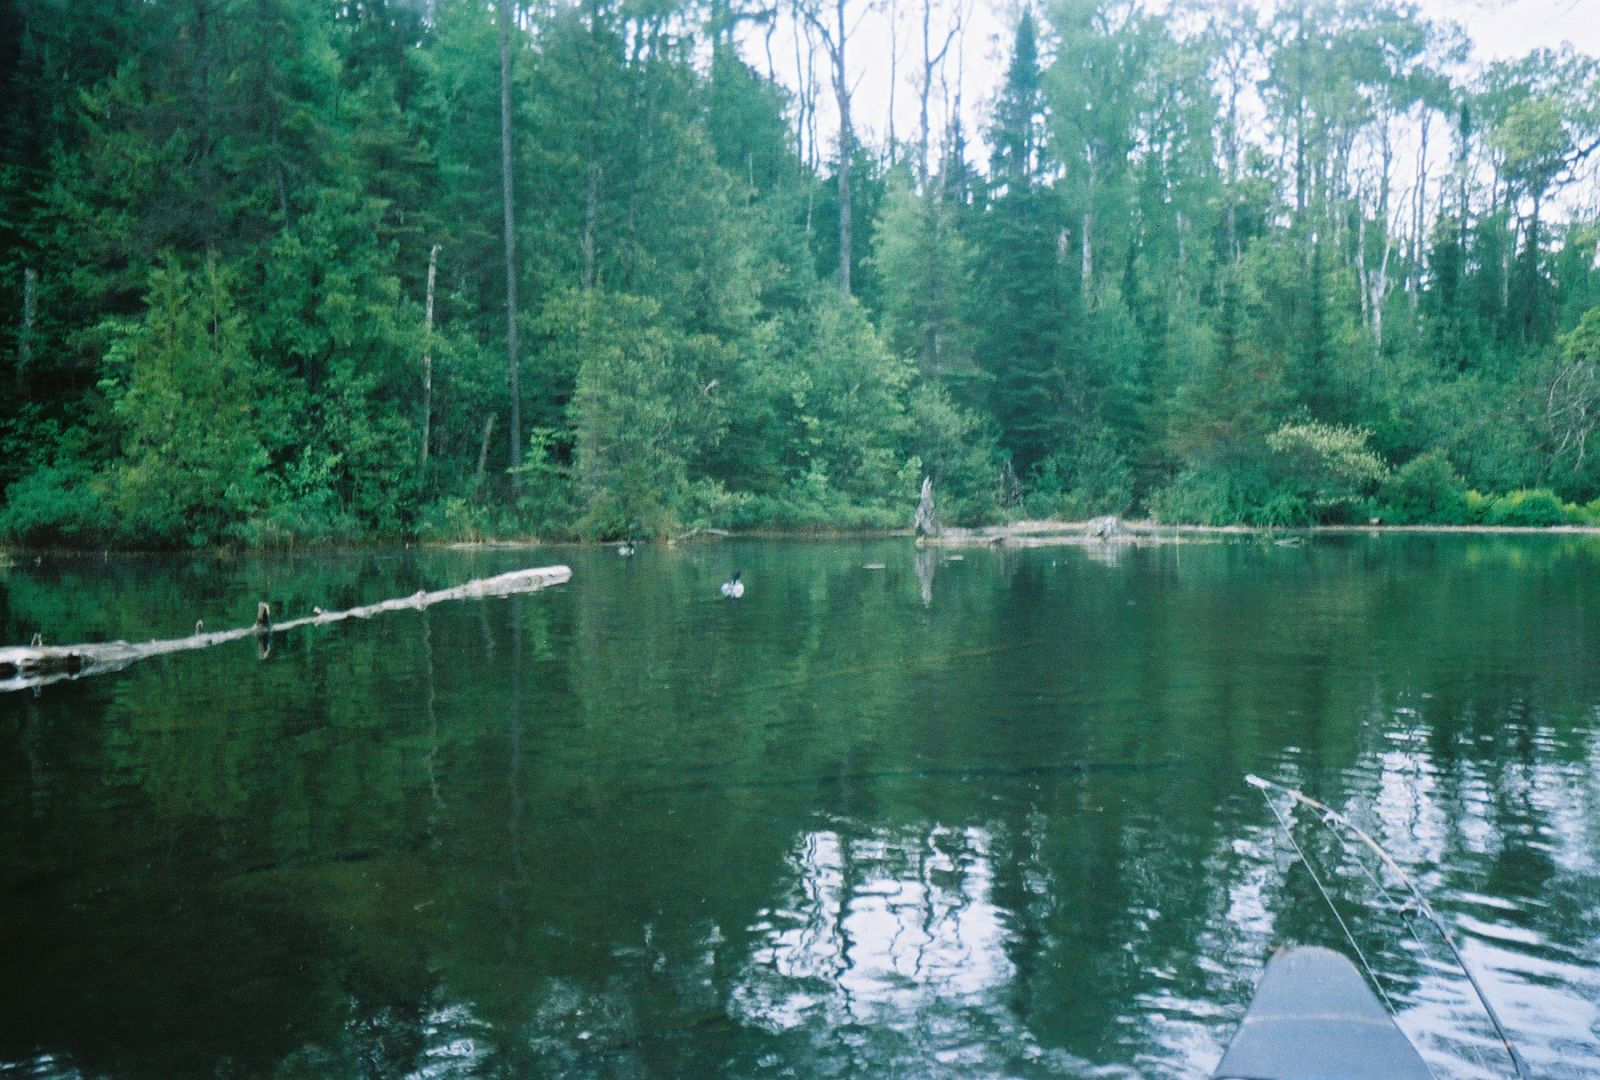 Fishing Spot On Canoe lake